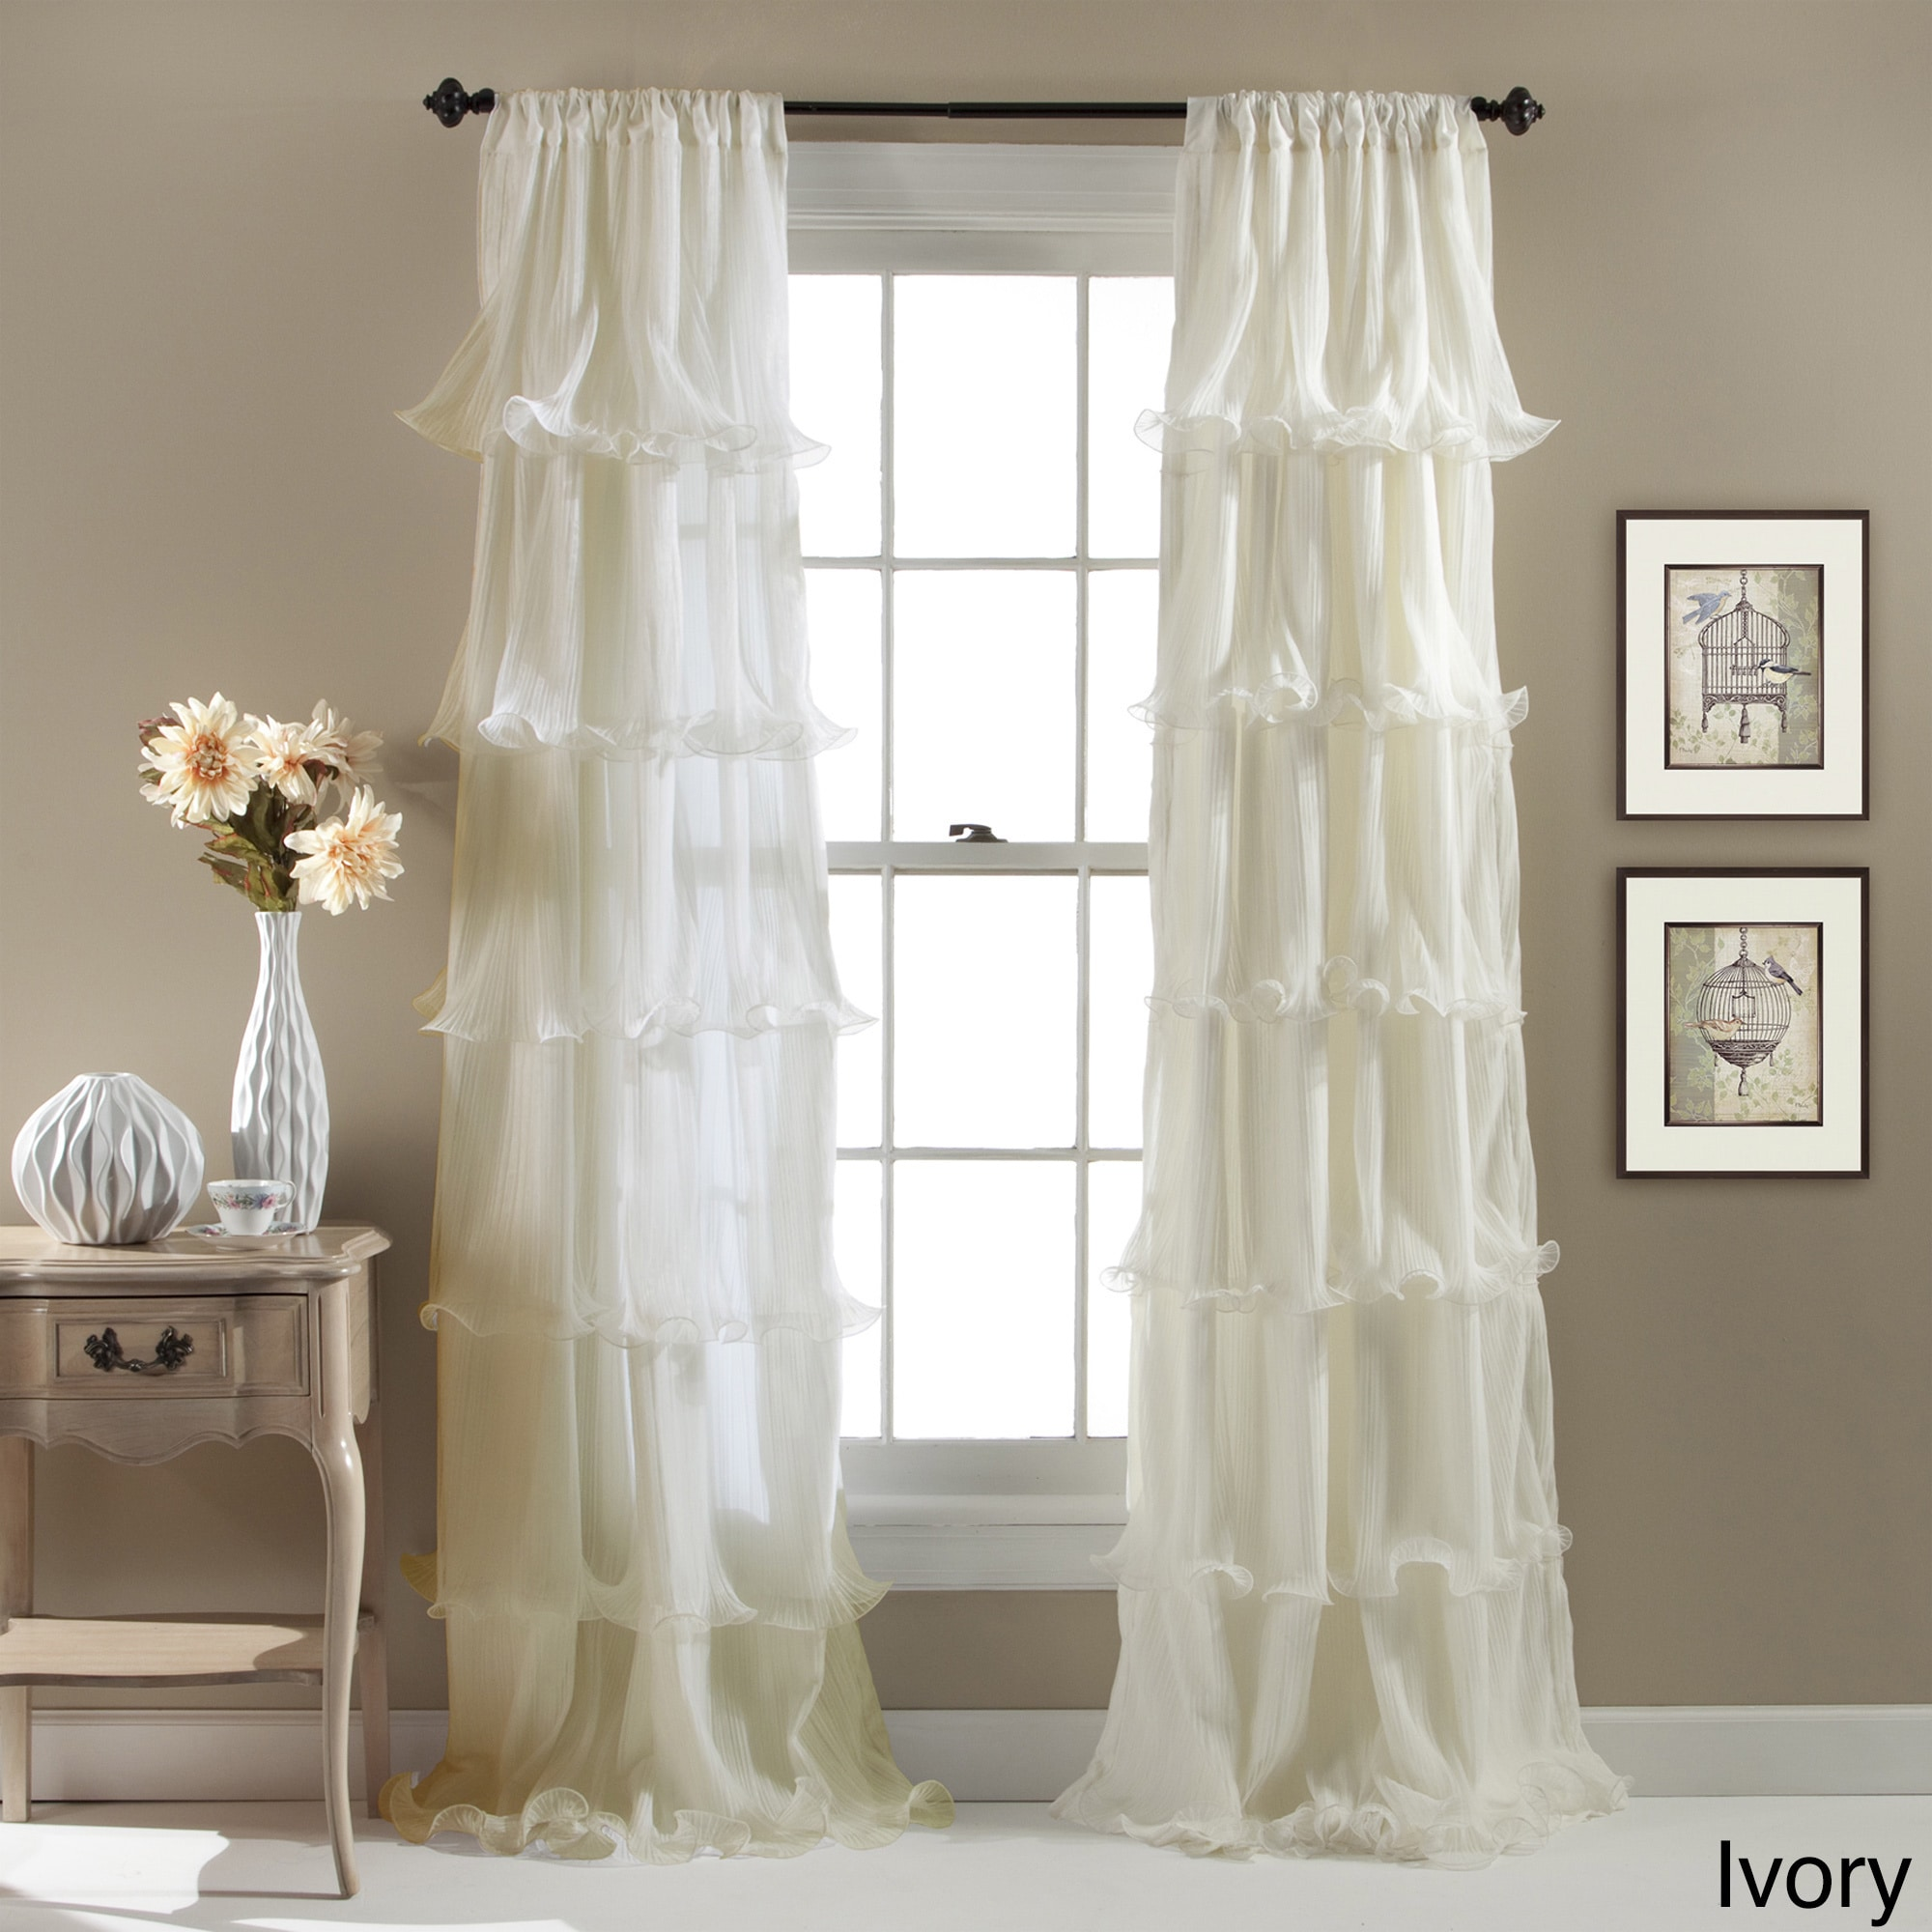 x ruffled ruffle panels panel p curtains expand festival click pleated to curtain